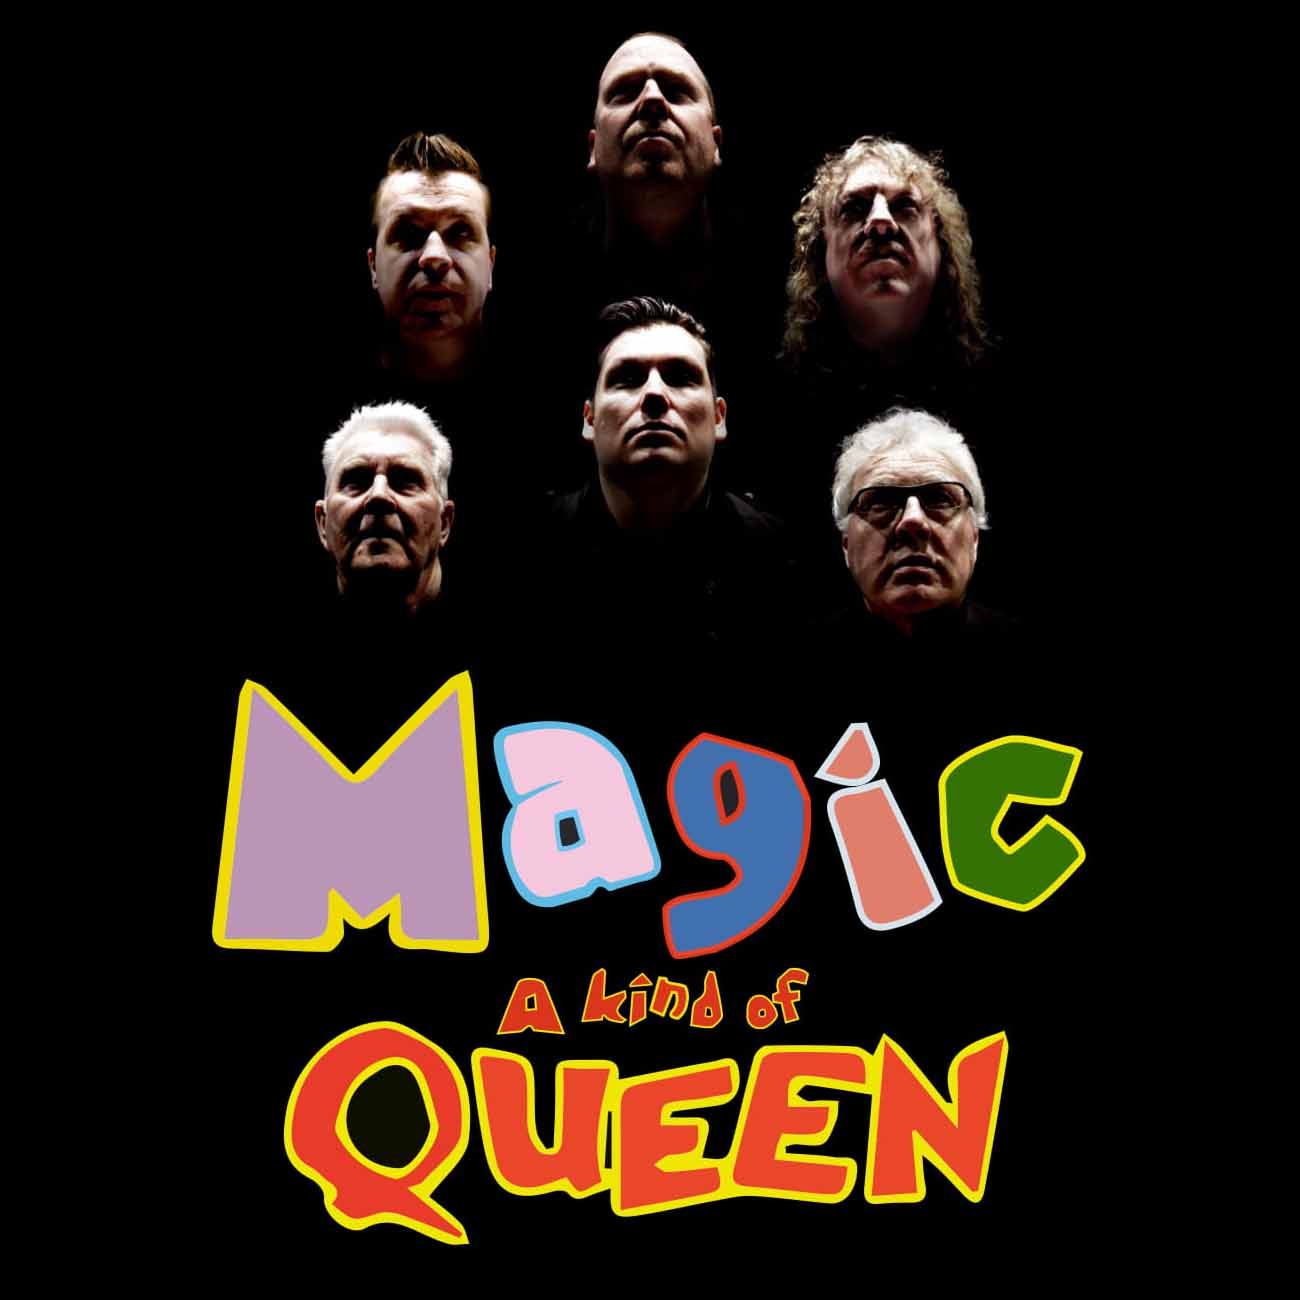 Magic a Kind of Queen